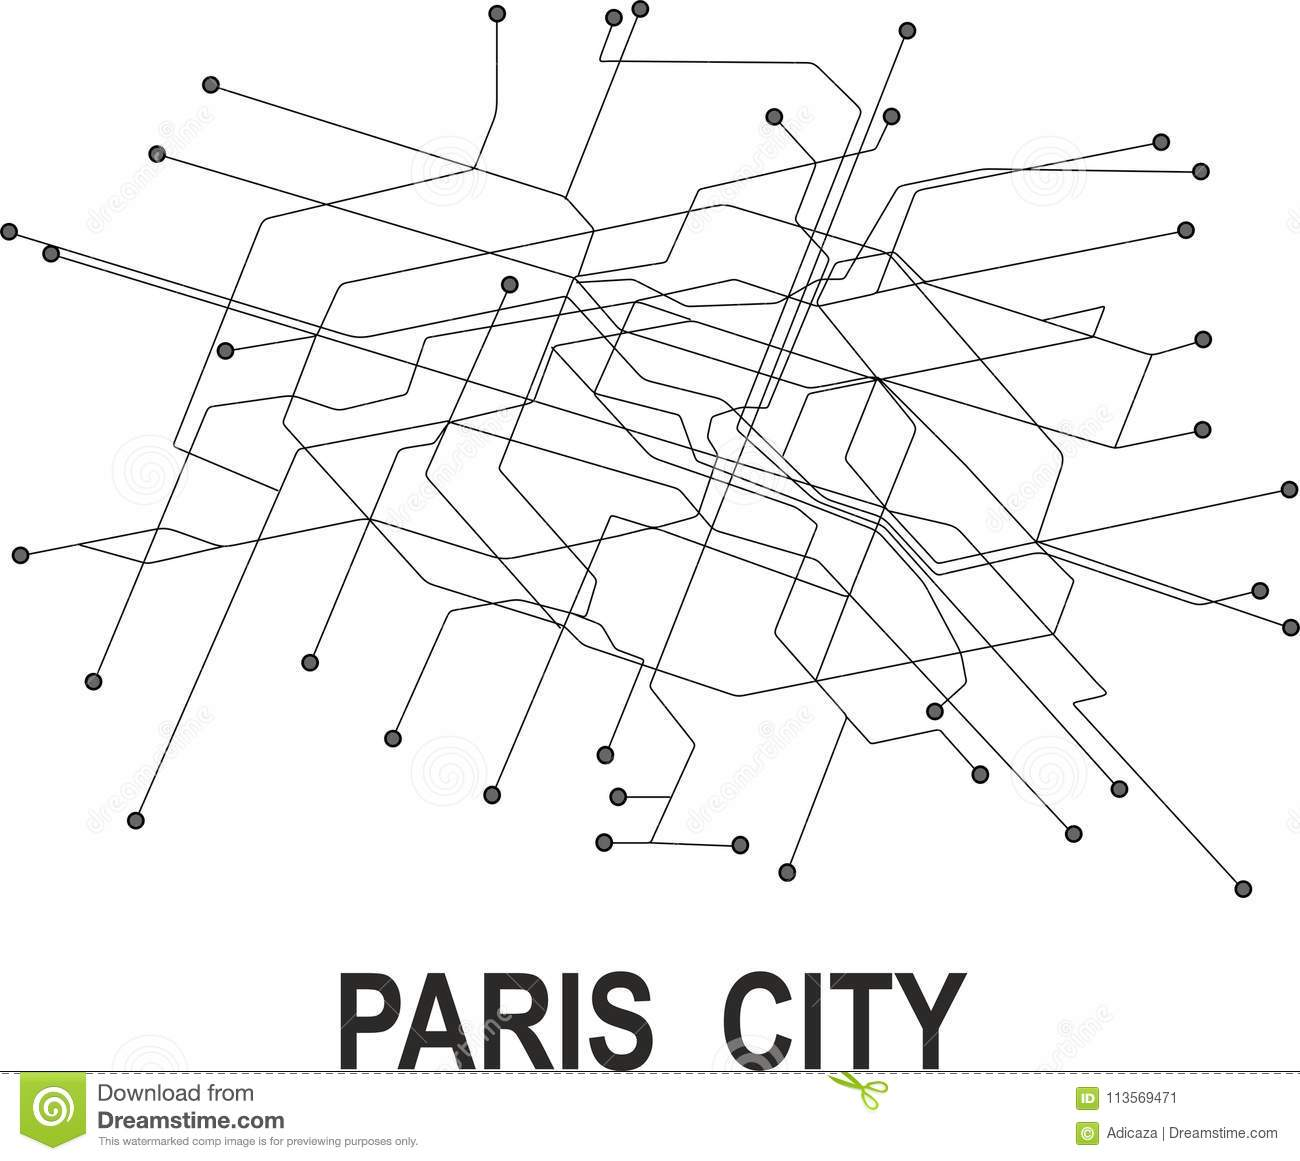 Black And White Subway Map.Paris City Map Stock Vector Illustration Of Metro Station 113569471